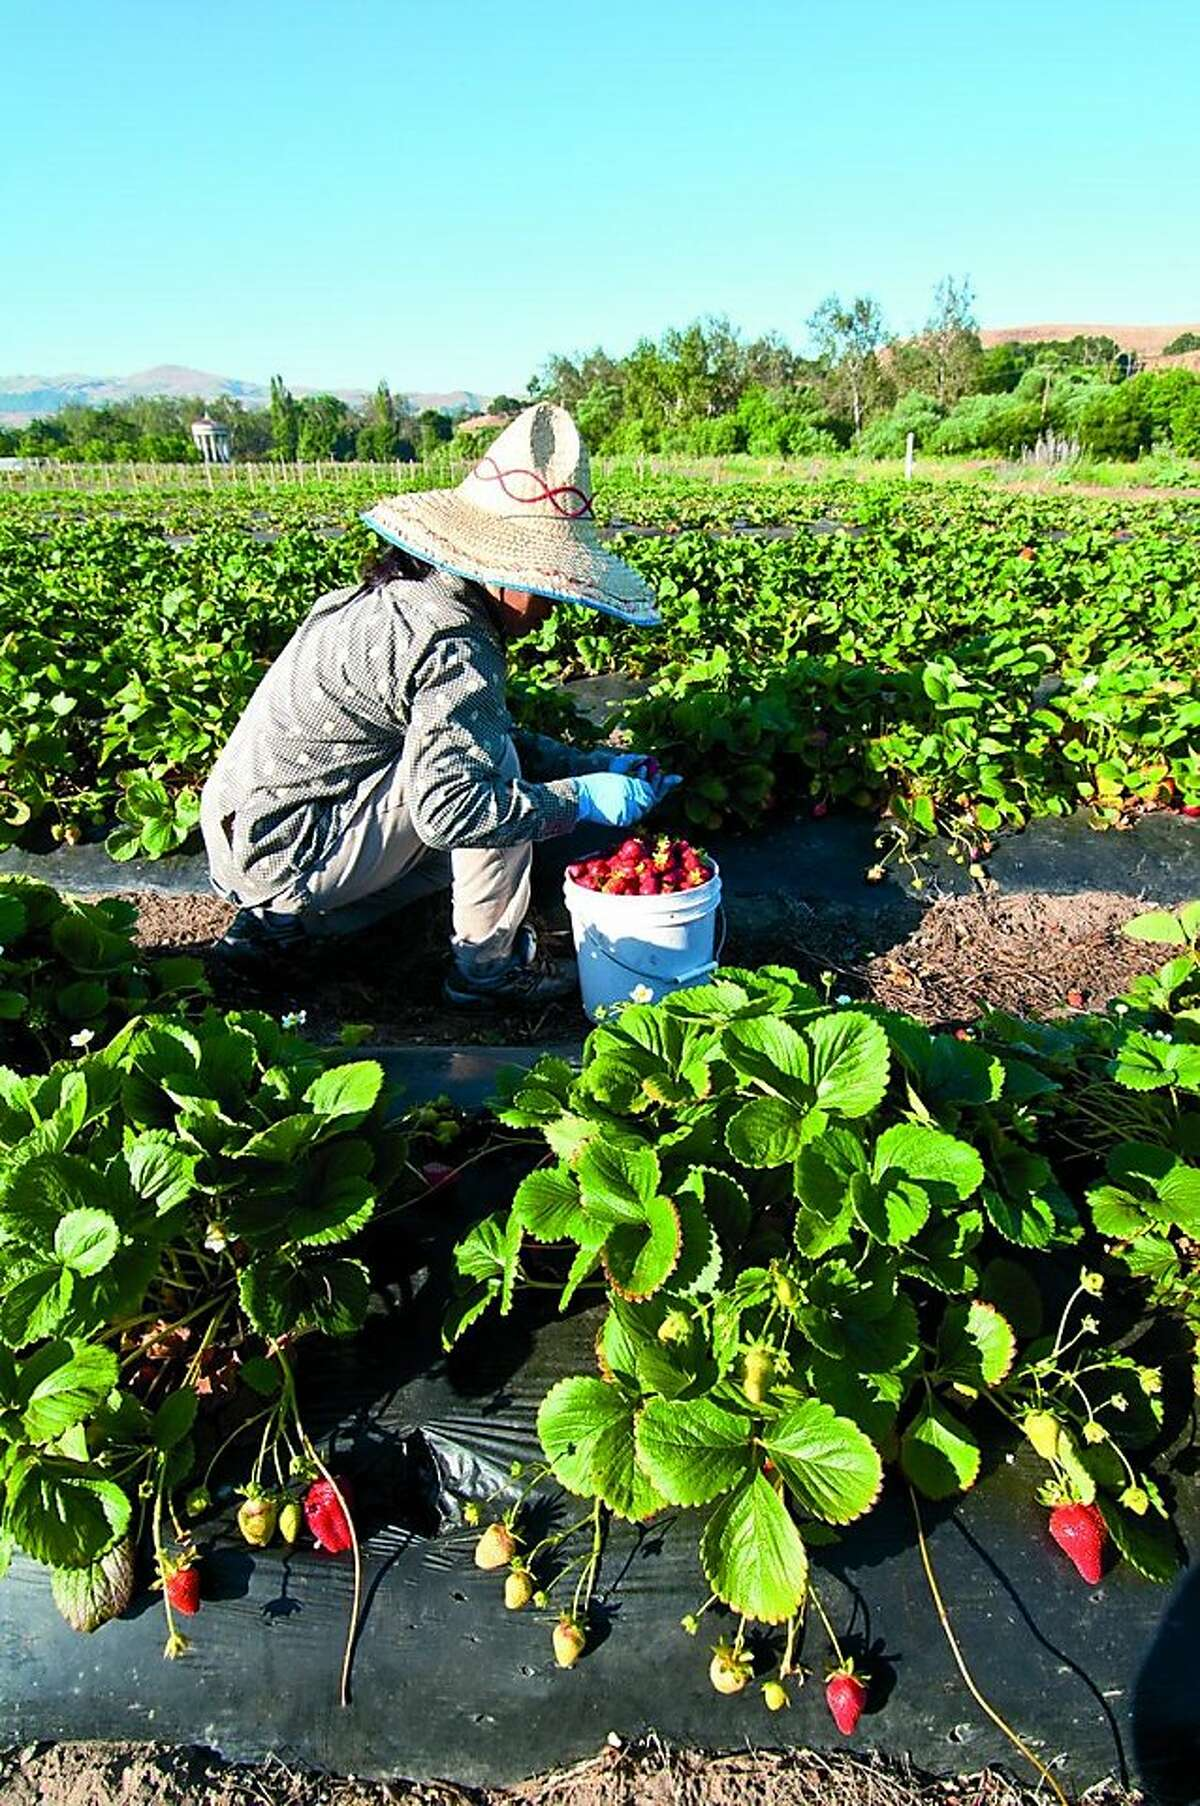 Muang Saechao picks strawberries that she and her husband farm at Iu-Mien Village Farms in the Sunol AgPark. Muang Saechao picks strawberries that she and her husband farm at Iu-Mien Village Farms in the Sunol AgPark. Photo by Stephen Joseph, stephenjosephphoto.com.